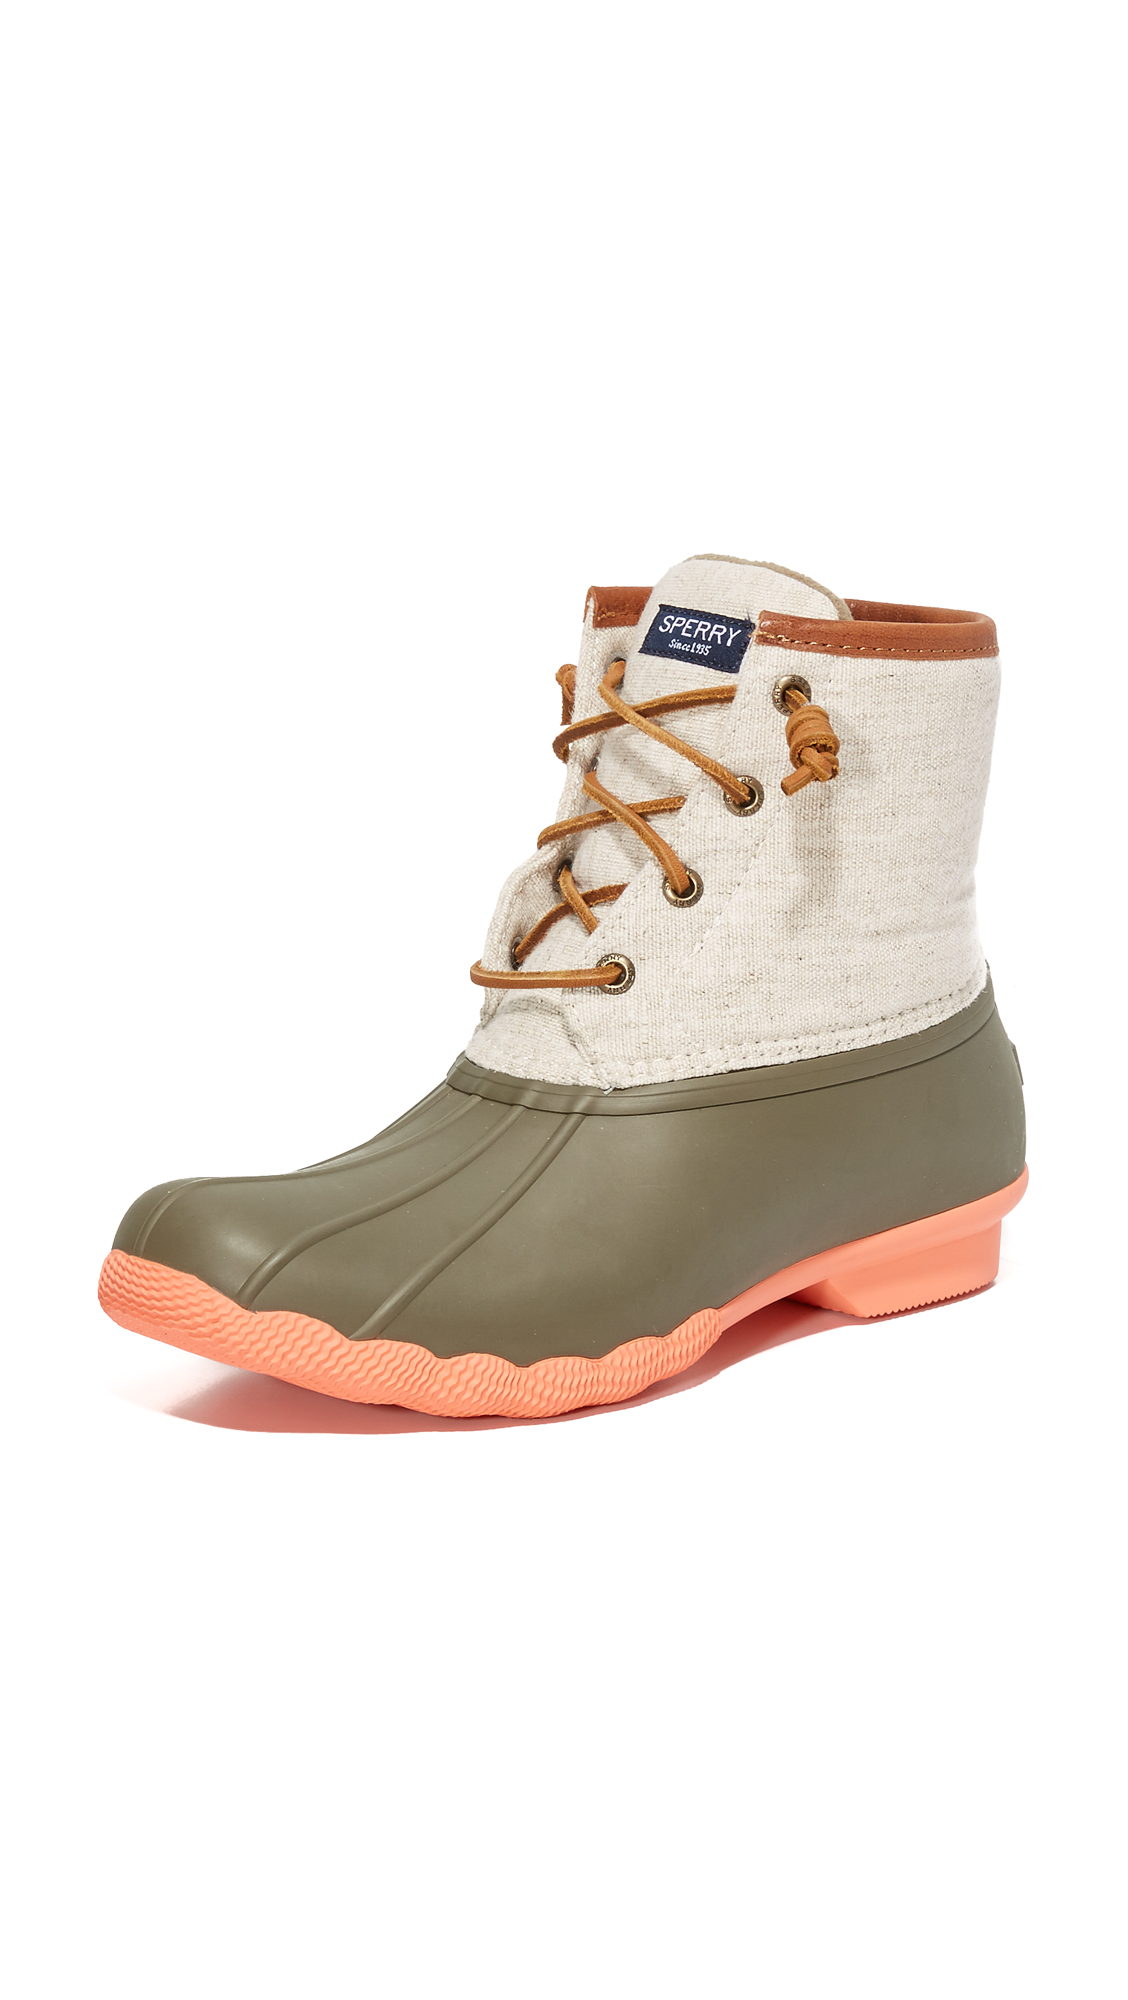 sperry female sperry saltwater booties taupenatural